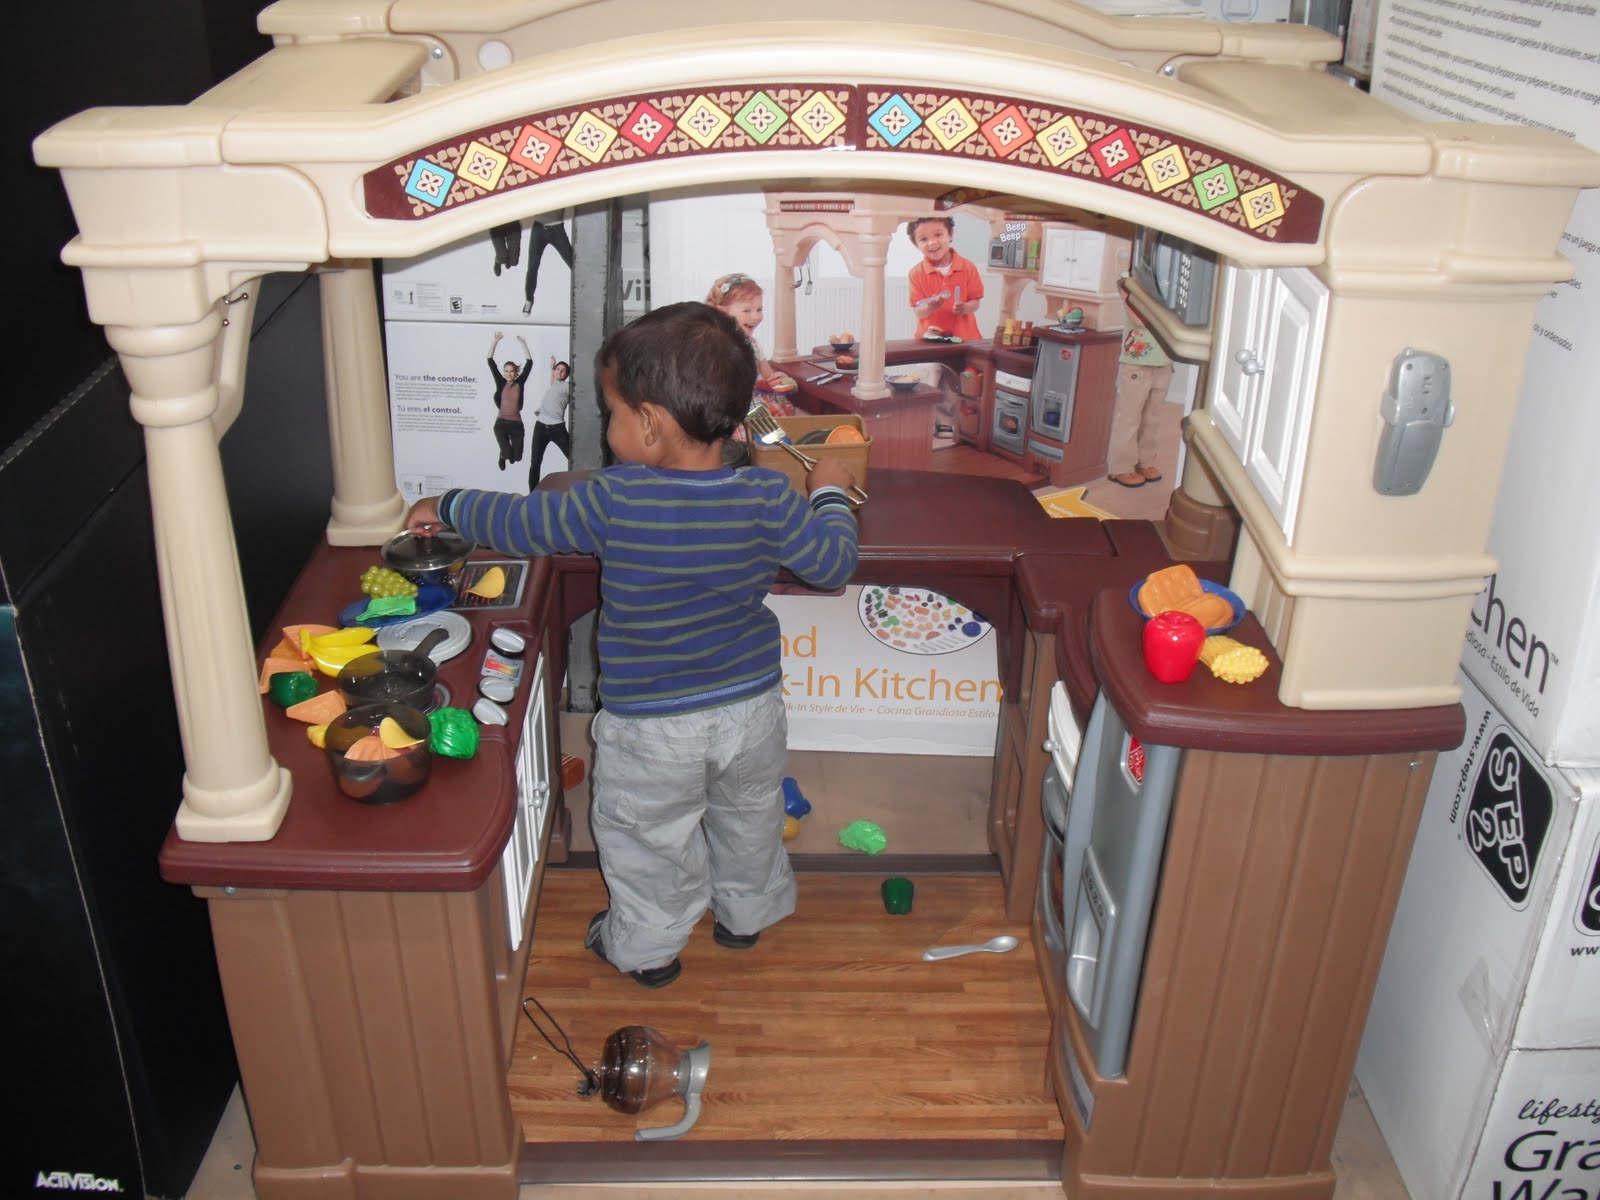 a beautiful life costco kitchen costco recently got in this deluxe walk in kitchen noah loves it and could keep busy for probably an hour easy i have taken him there just to play